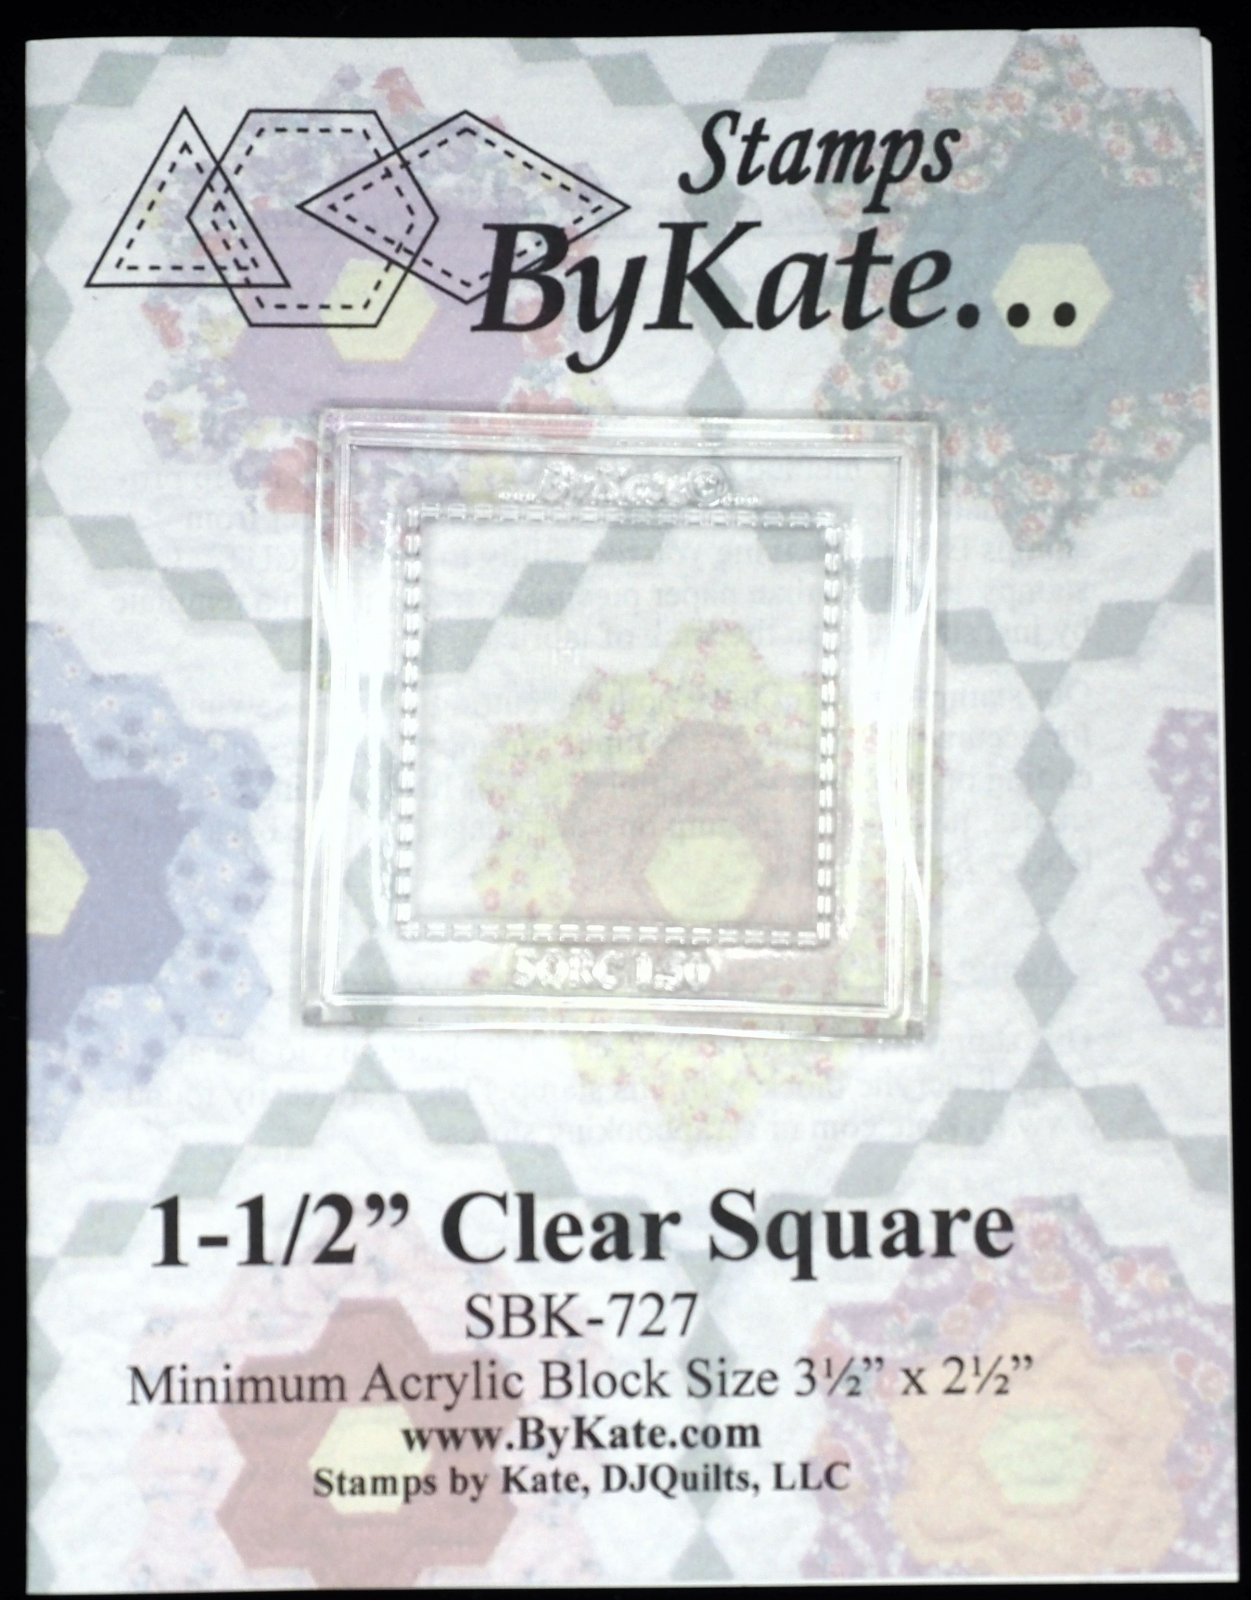 Clear Square Stamps